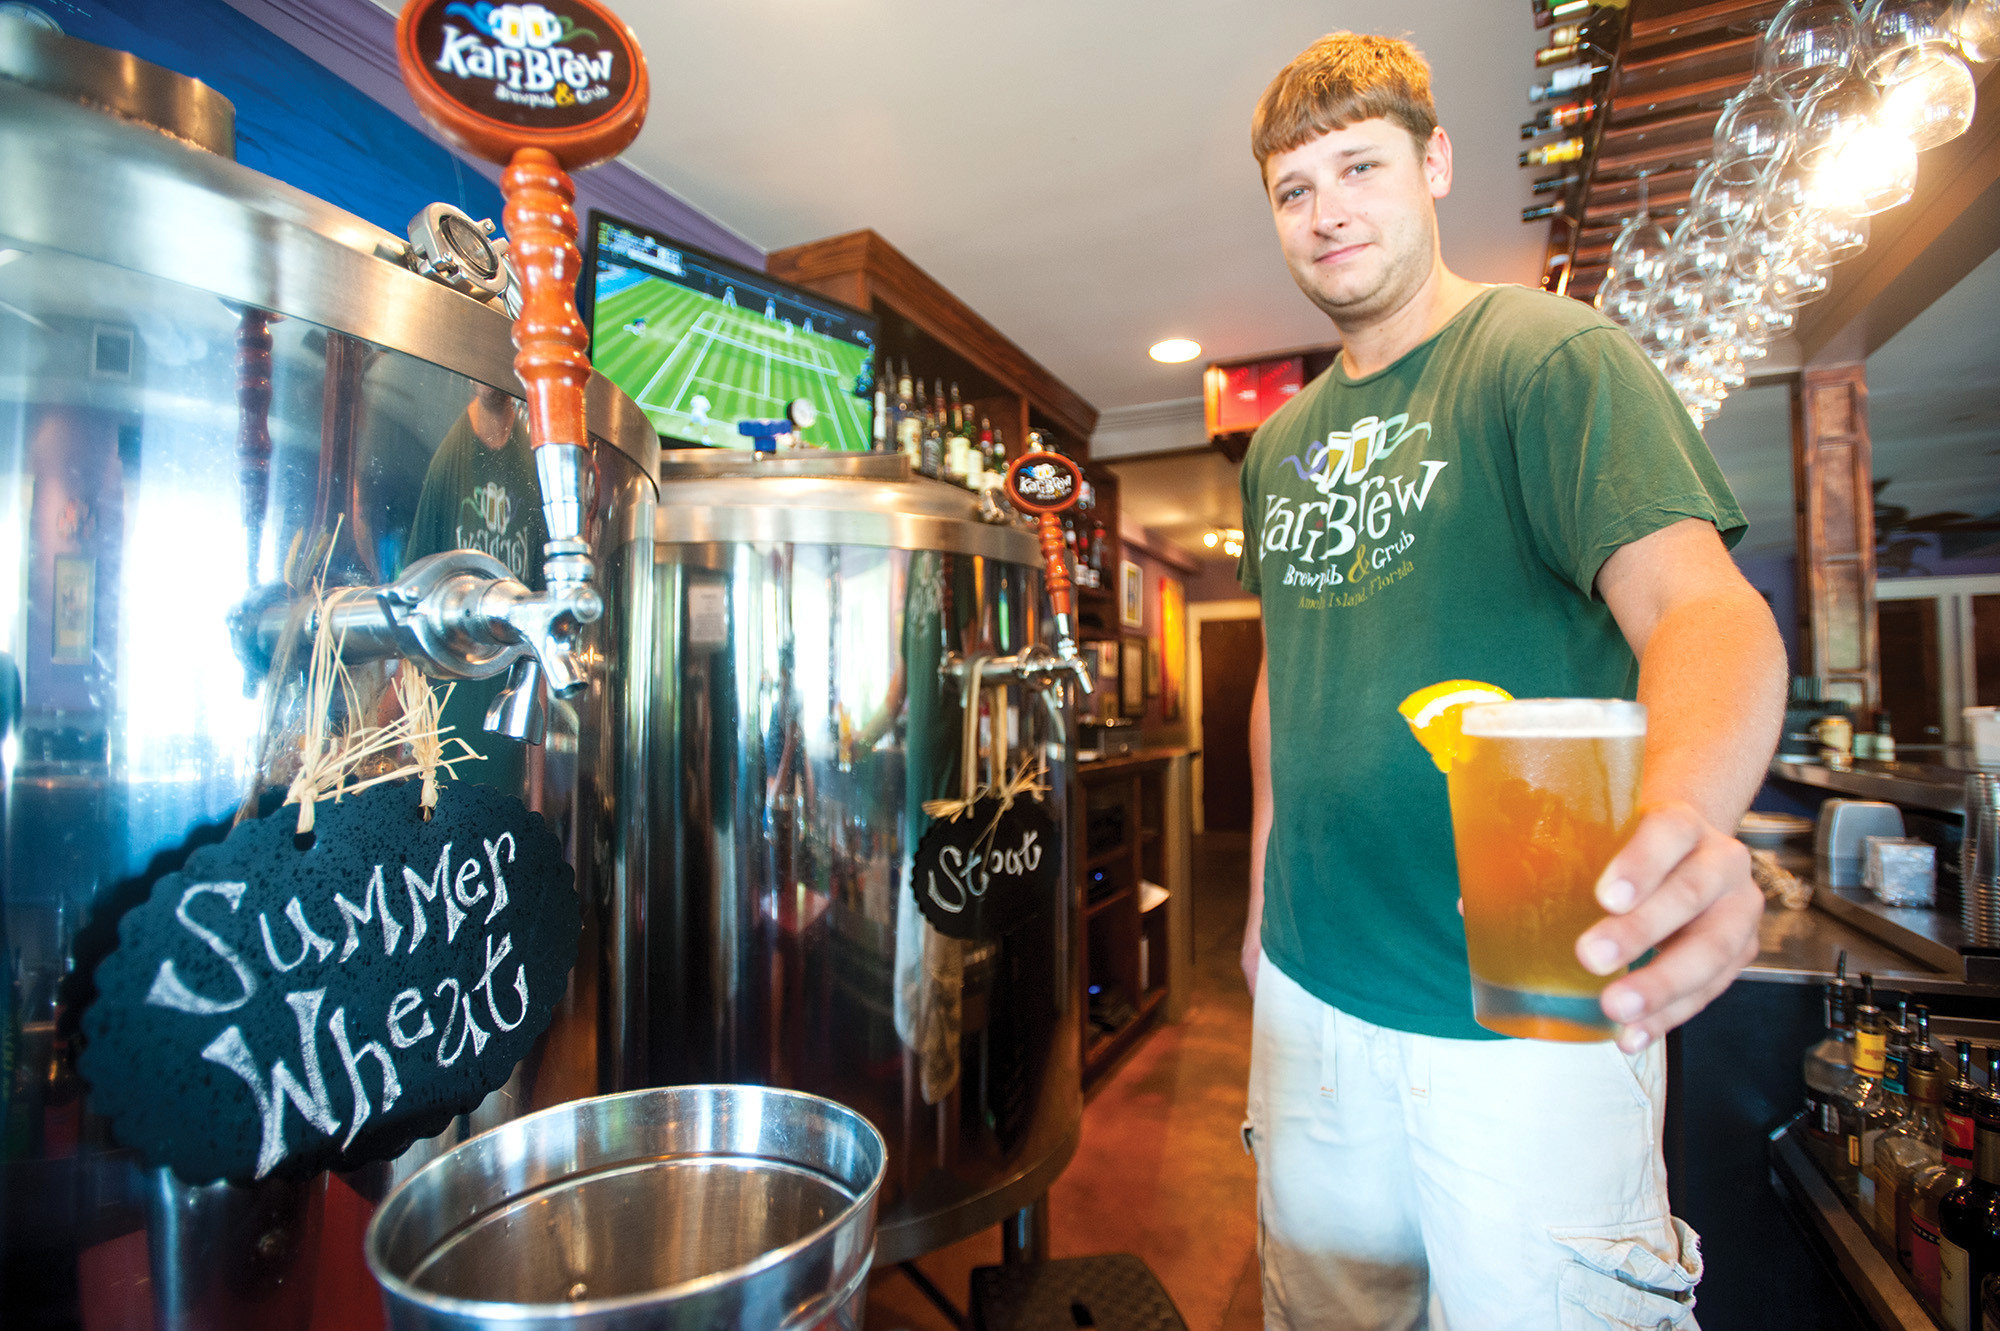 Nolan Winarchick pours a seasonal Summer Wheat at Karibrew Brew Pub & Grub, where Old Florida meets new for a pure urban funk atmosphere.